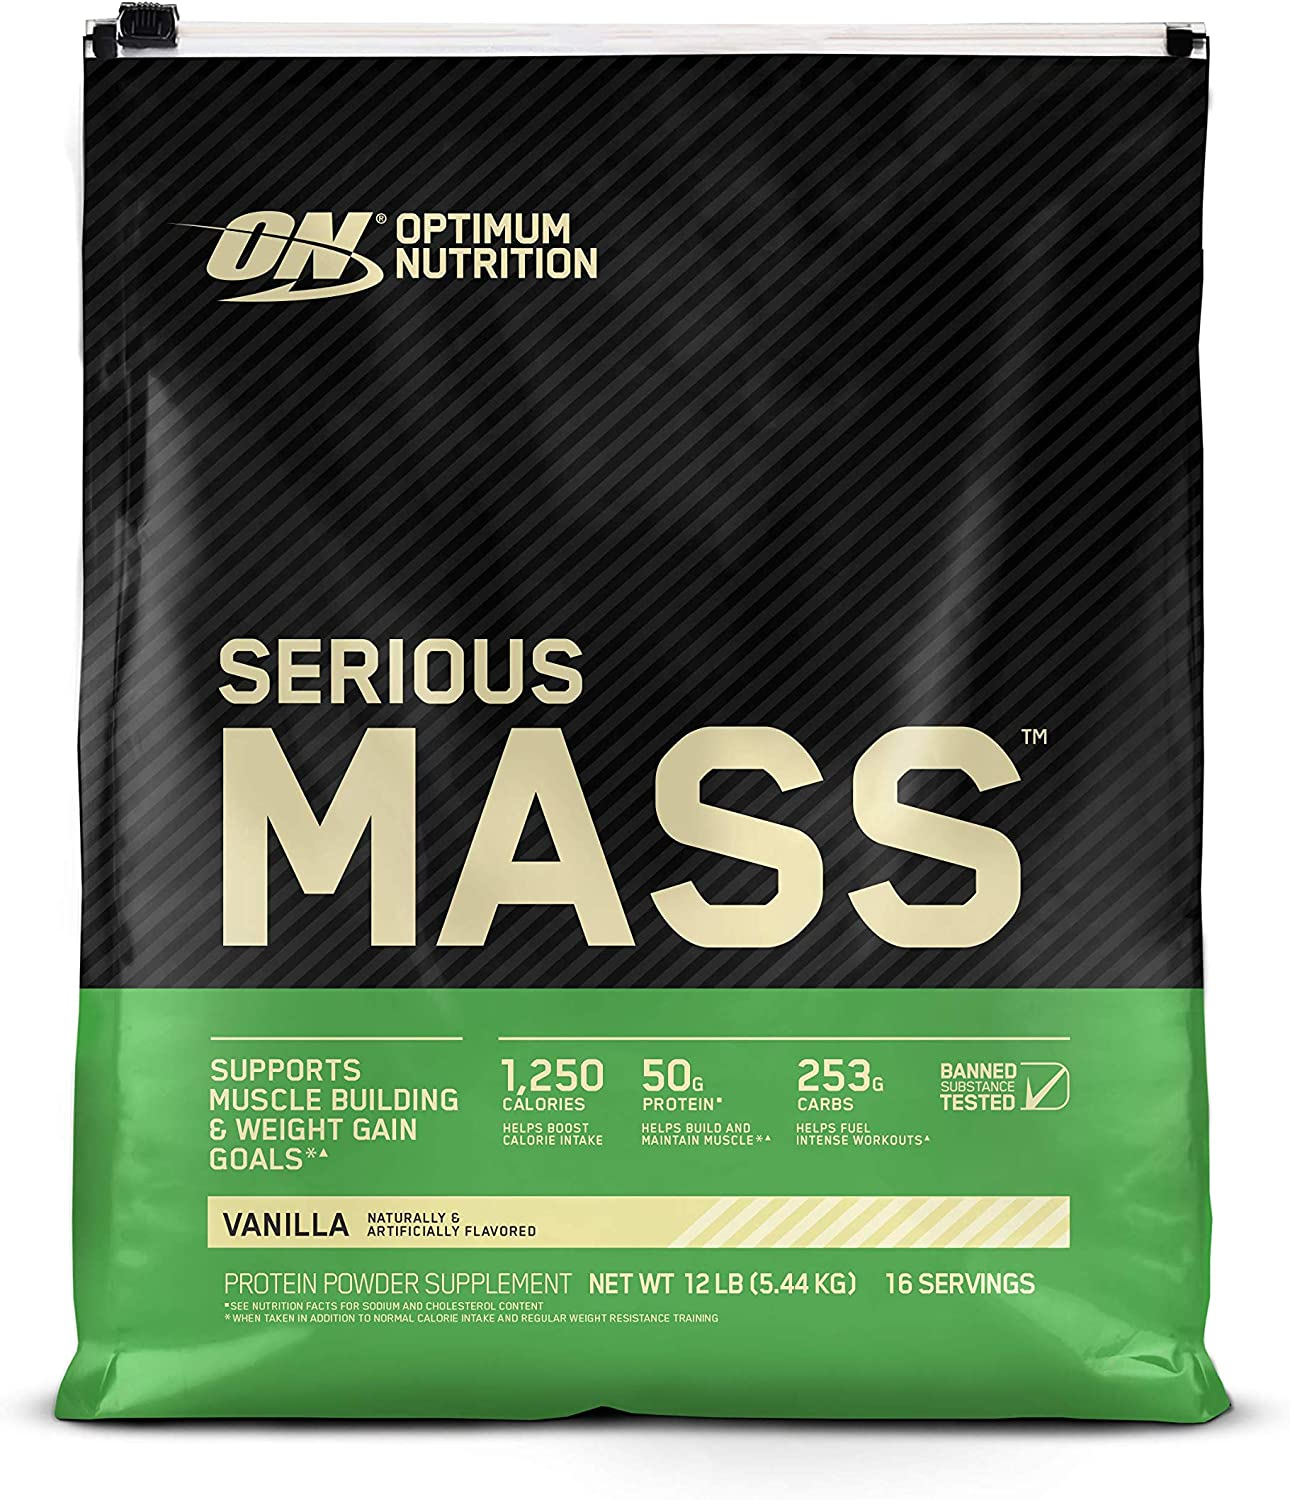 Optimum Nutrition Serious Mass Weight Gainer Protein Powder, Vitamin C, Zinc and Vitamin D for Immune Support, Vanilla, 12 Pound (Packaging May Vary)